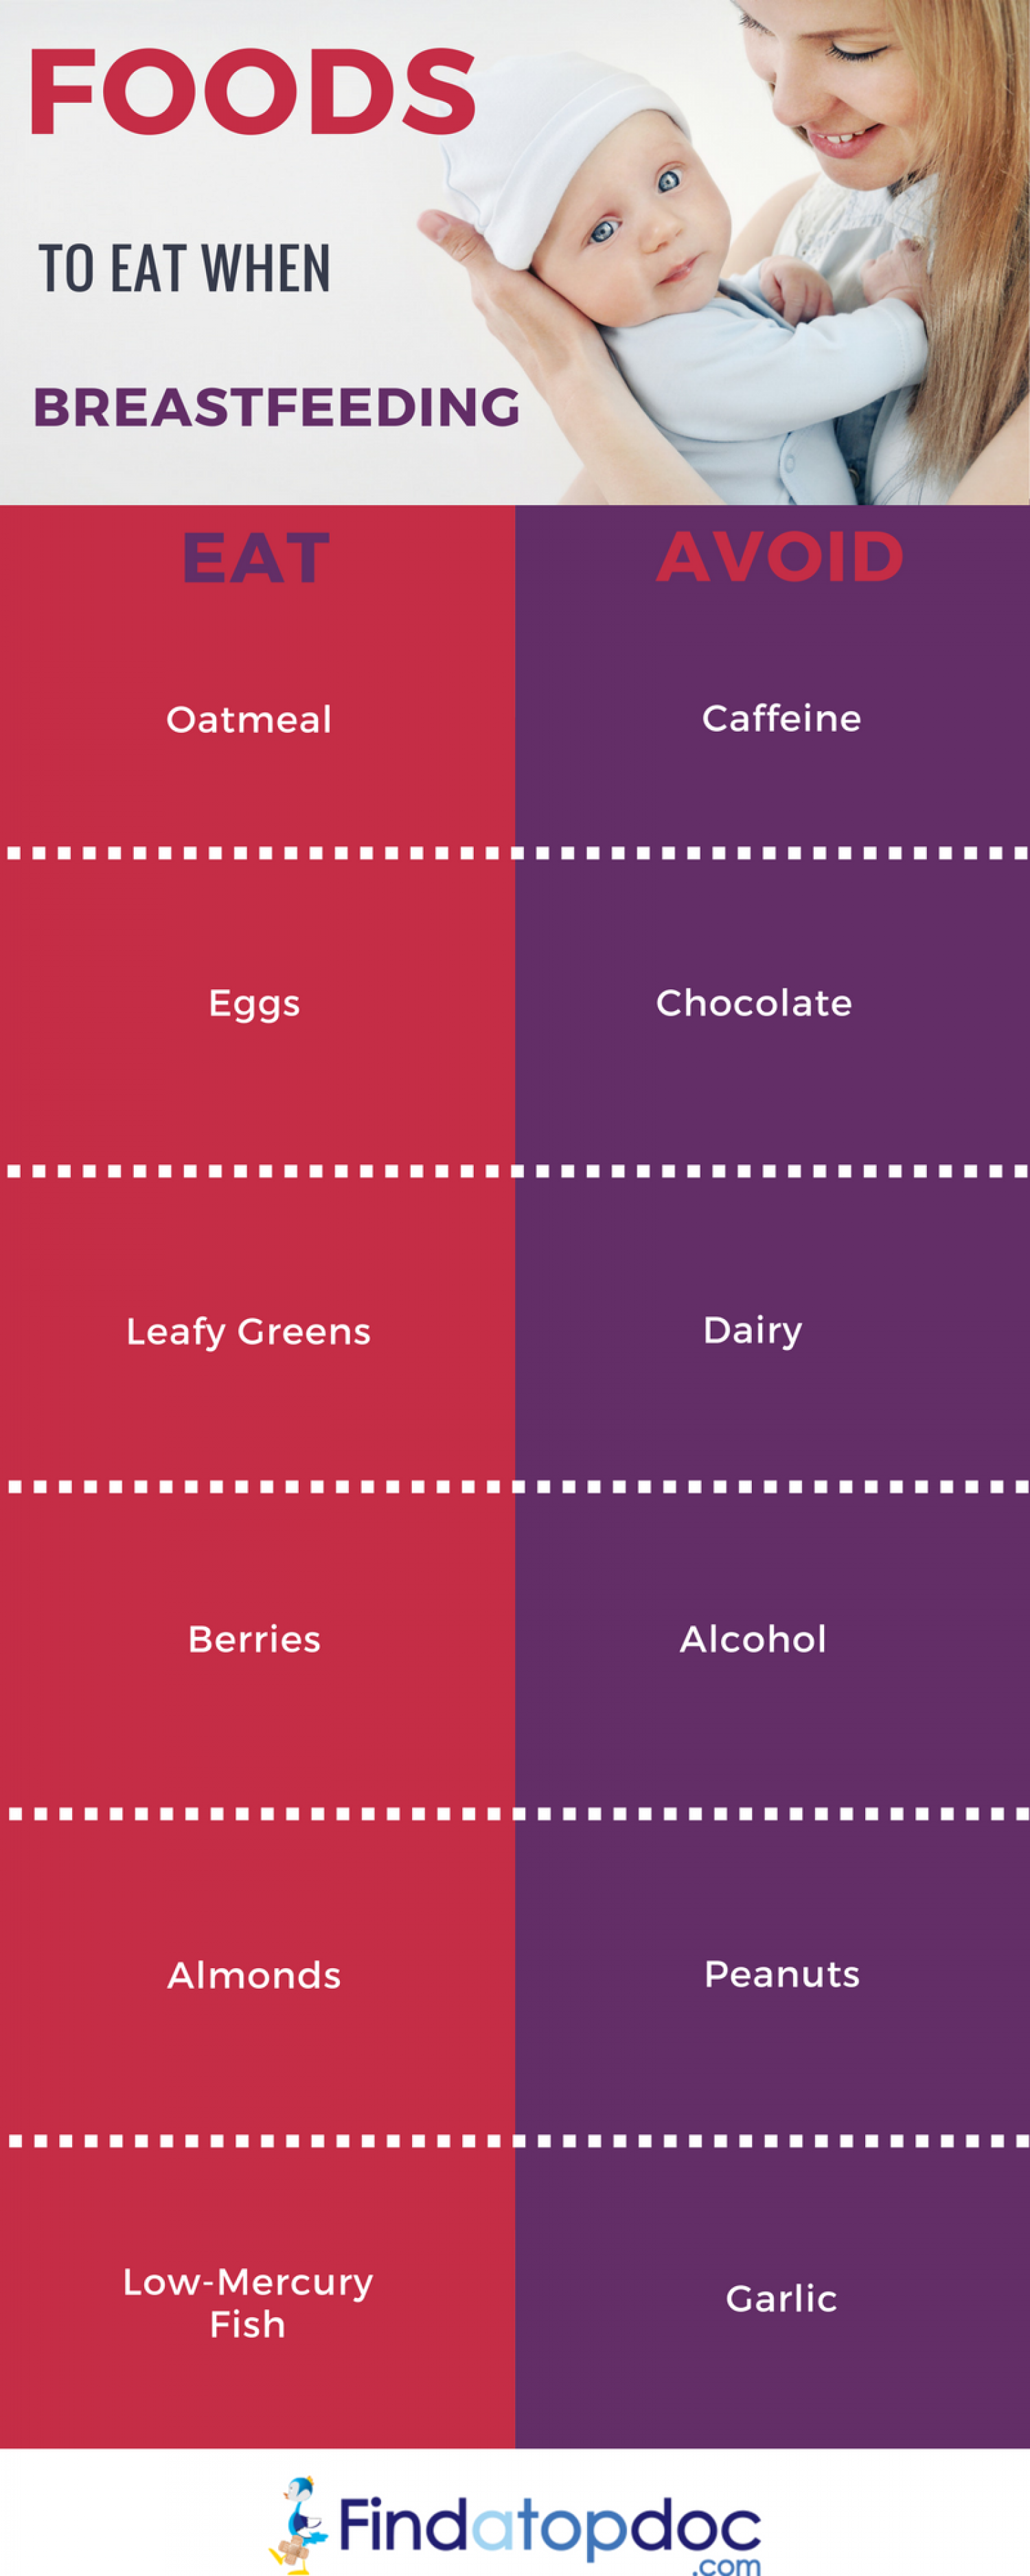 Foods to Eat When Breastfeeding Infographic